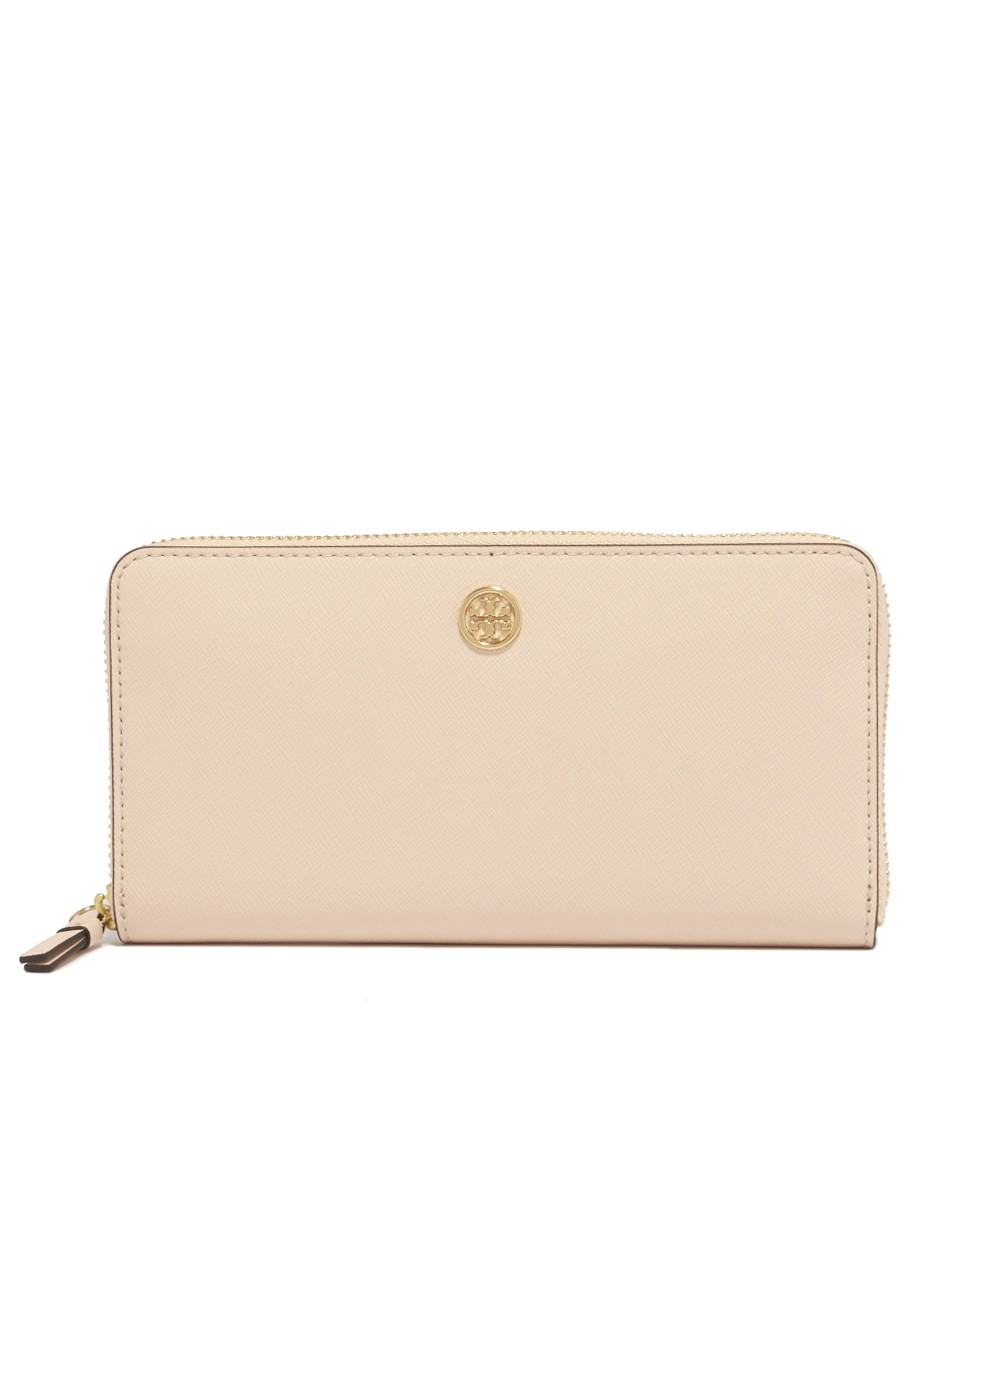 TORY BURCH|トリバーチ|ROBINSON|ロビンソン|ZIP CONTINENTAL WALLET